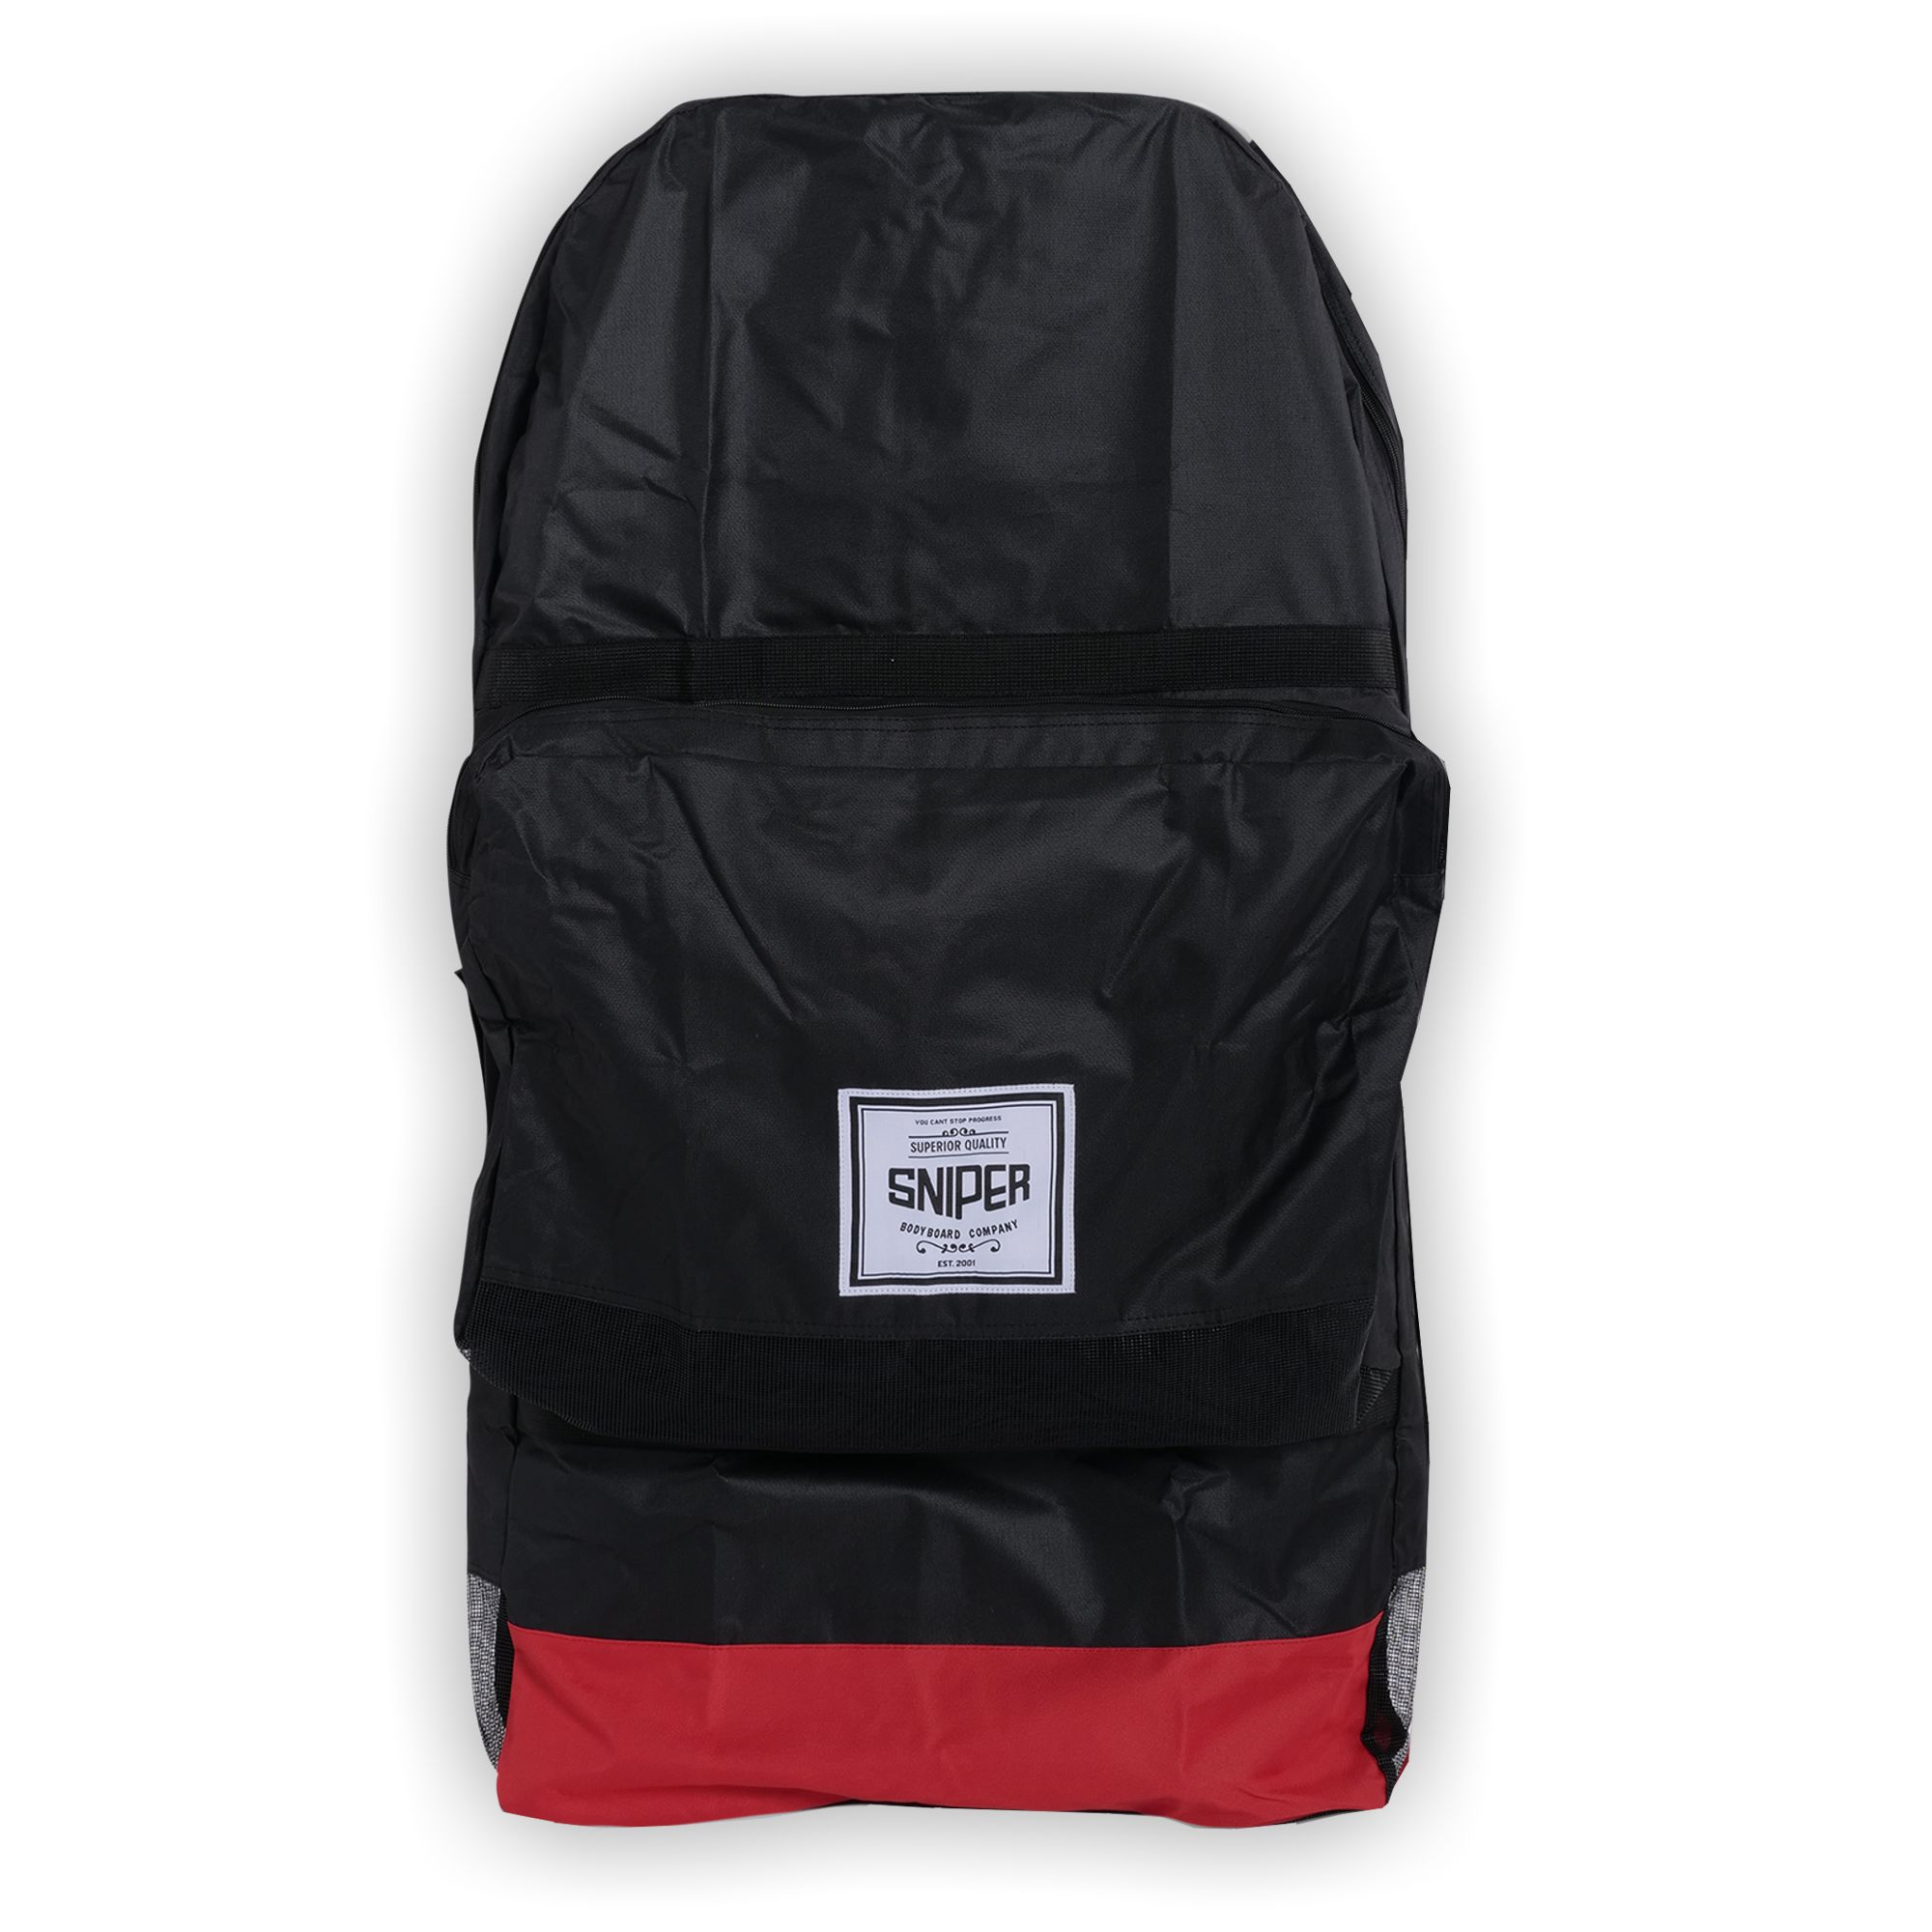 SNIPER Boardbag Bodyboard Single Cover Deluxe